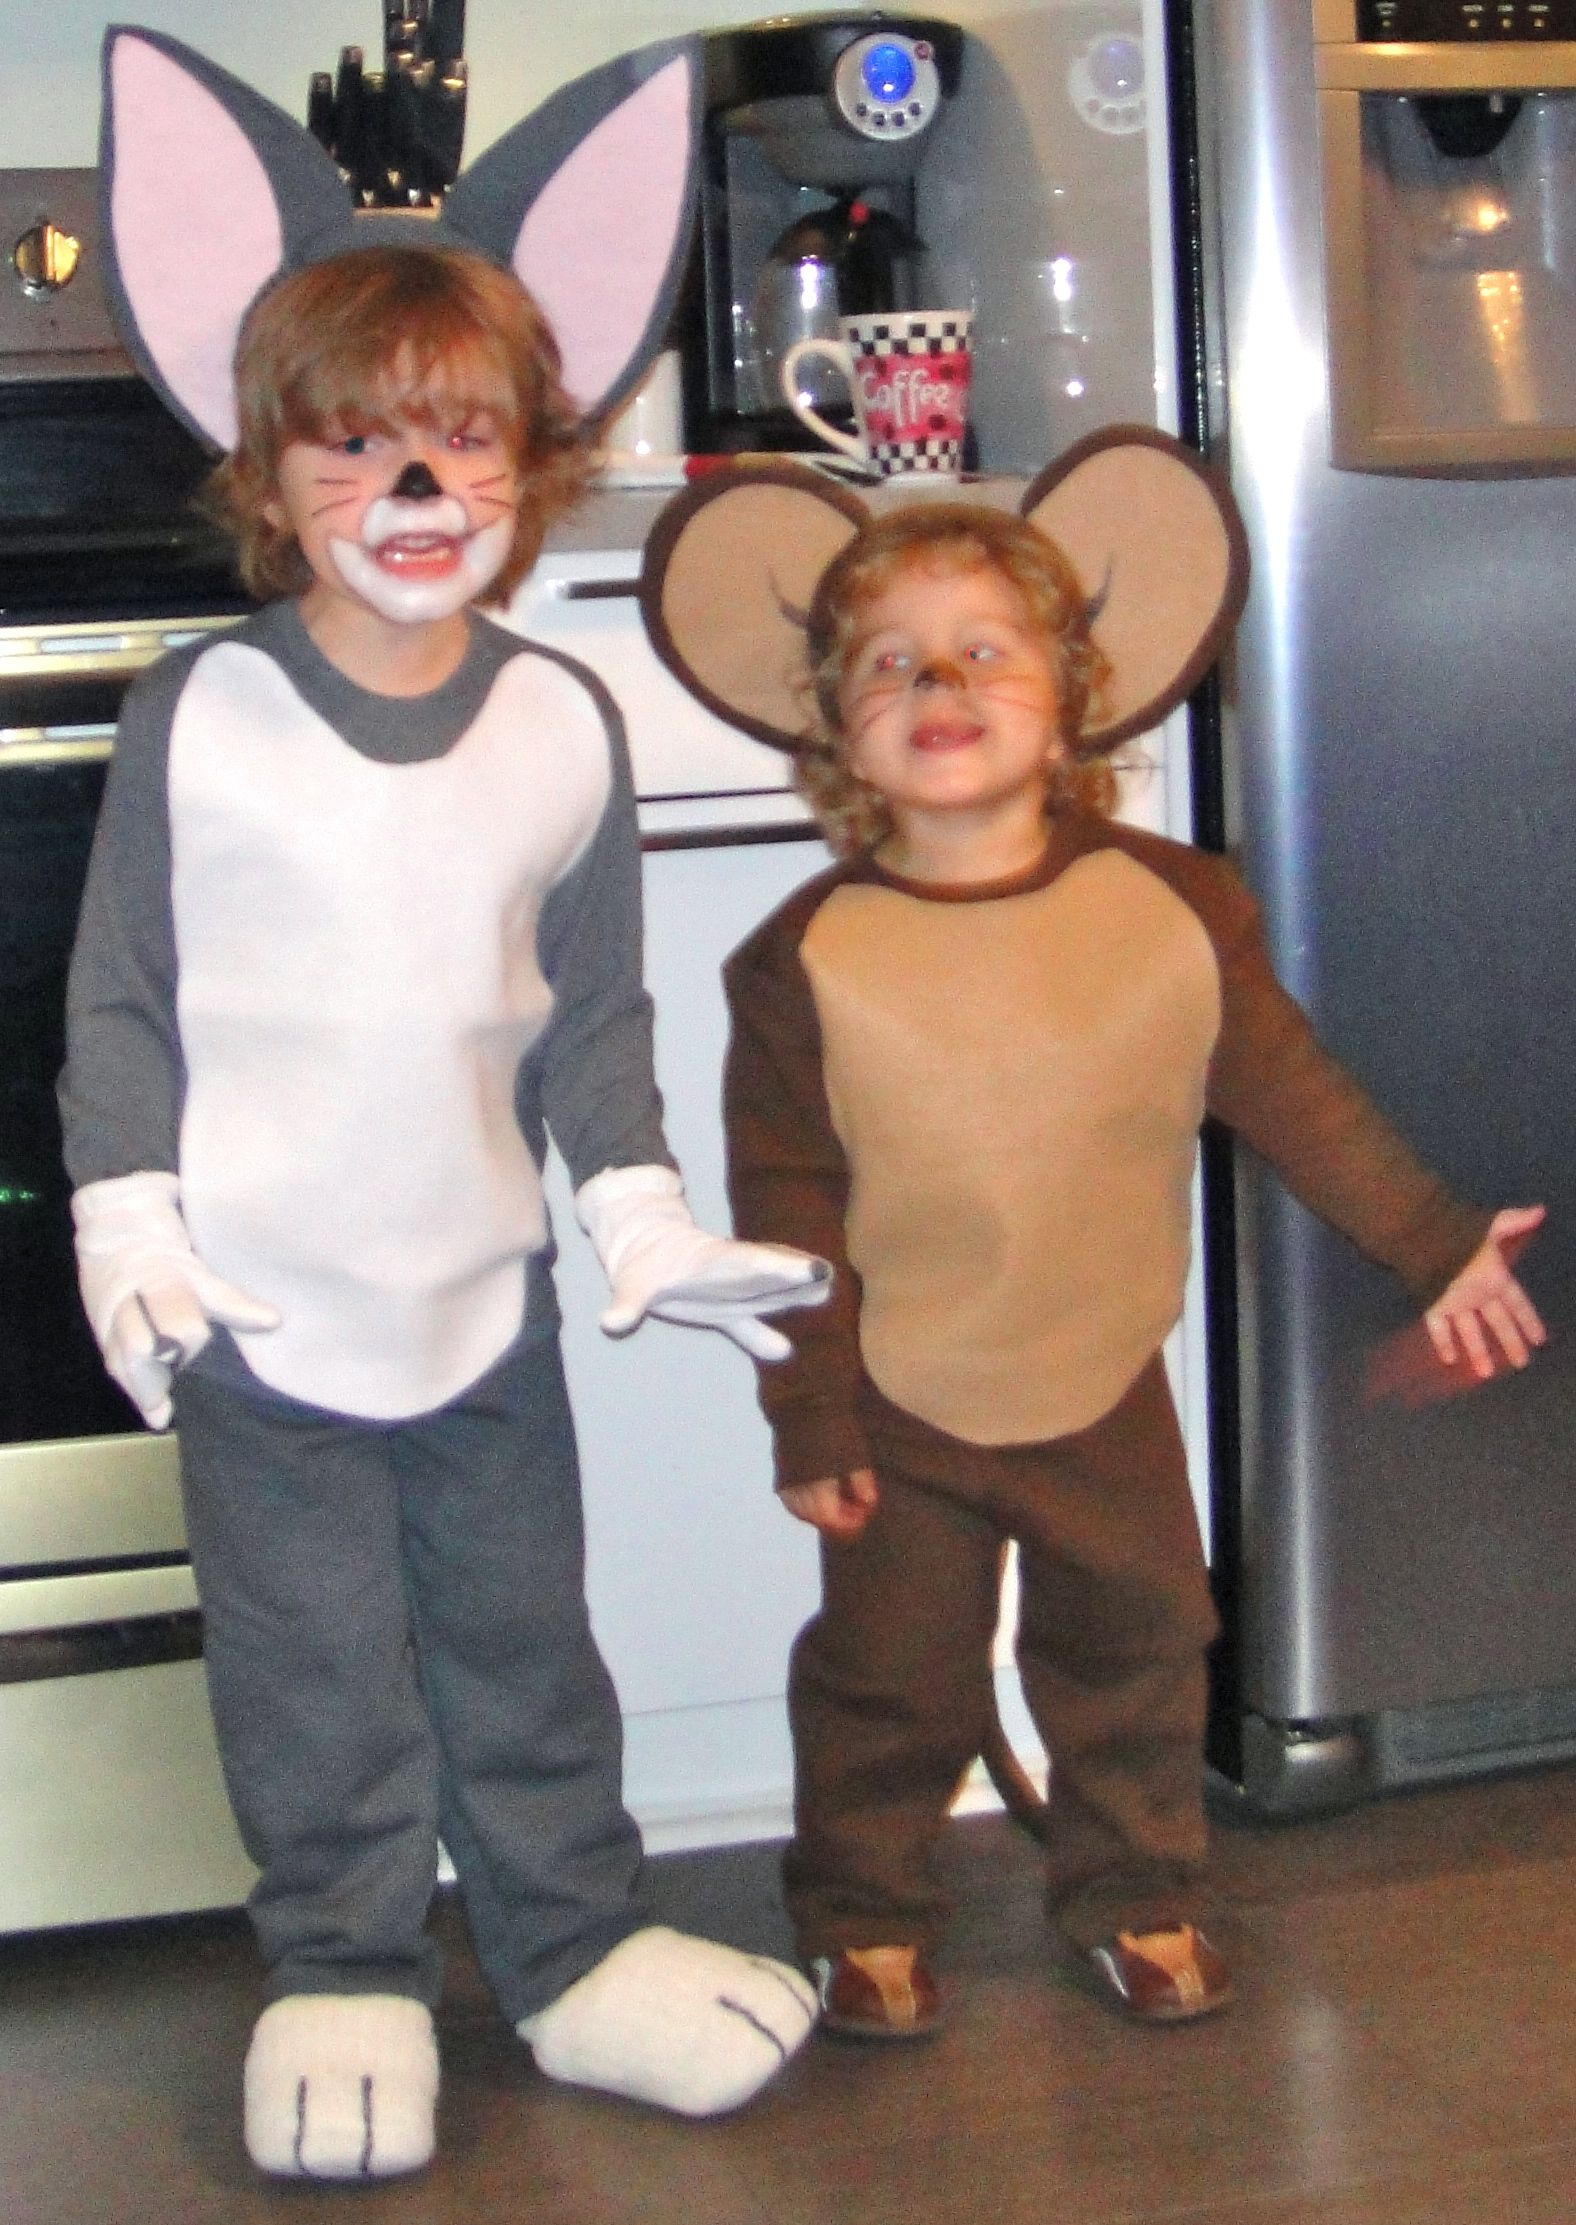 Tom and Jerry Costumes #Halloweencostumes #paircostumes #couplescostumes #duo #kidcostumes & Tom and Jerry Costumes #Halloweencostumes #paircostumes ...